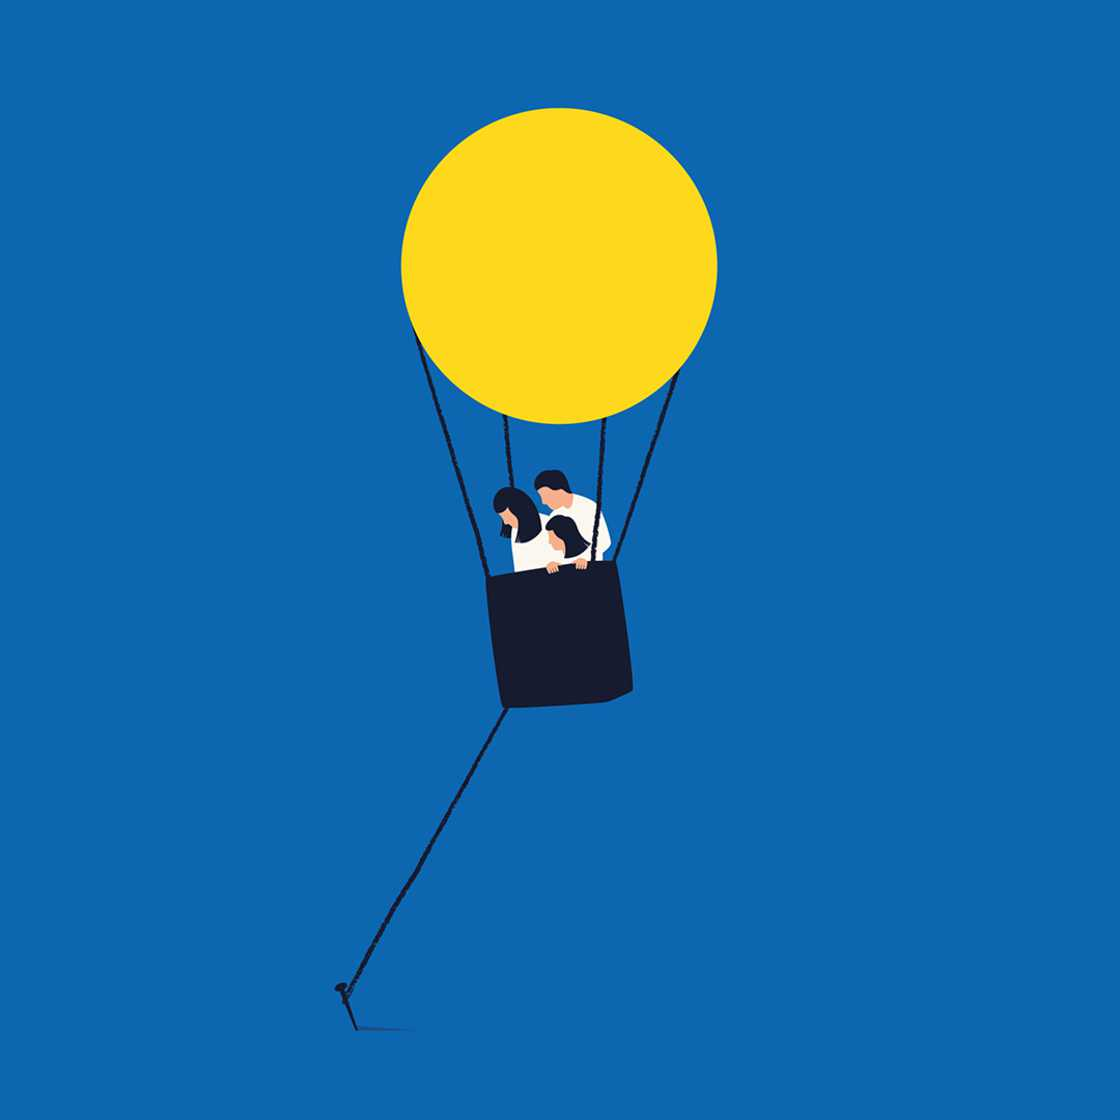 The satirical and minimalist illustrations of Francesco Ciccolella